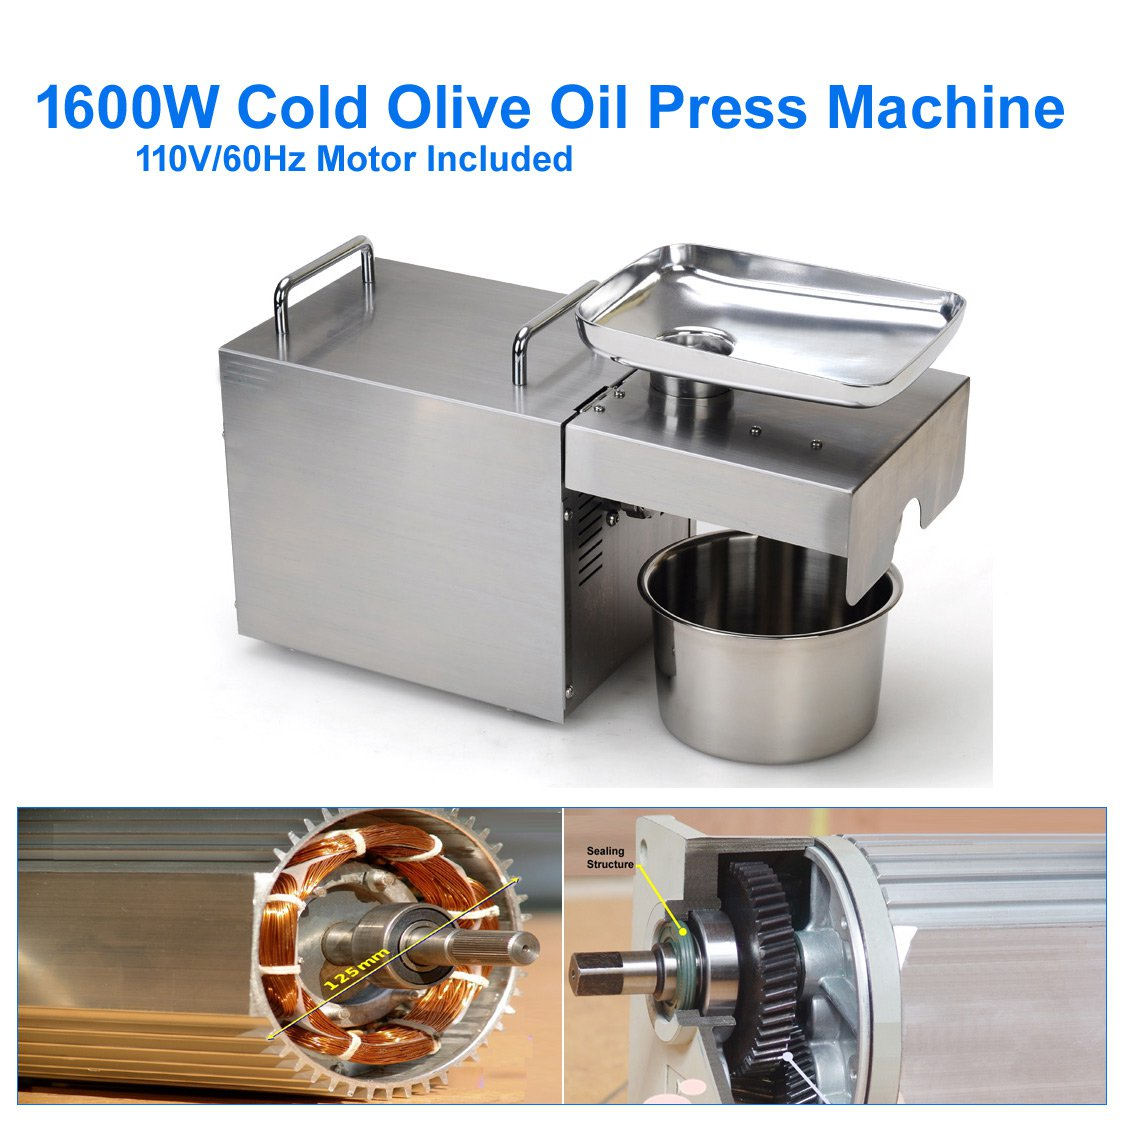 Cold Seeds Oil Press Machine - 1600W  NEWEST Electric Seed Oil Press Mill [8-15 lbs/ hr]